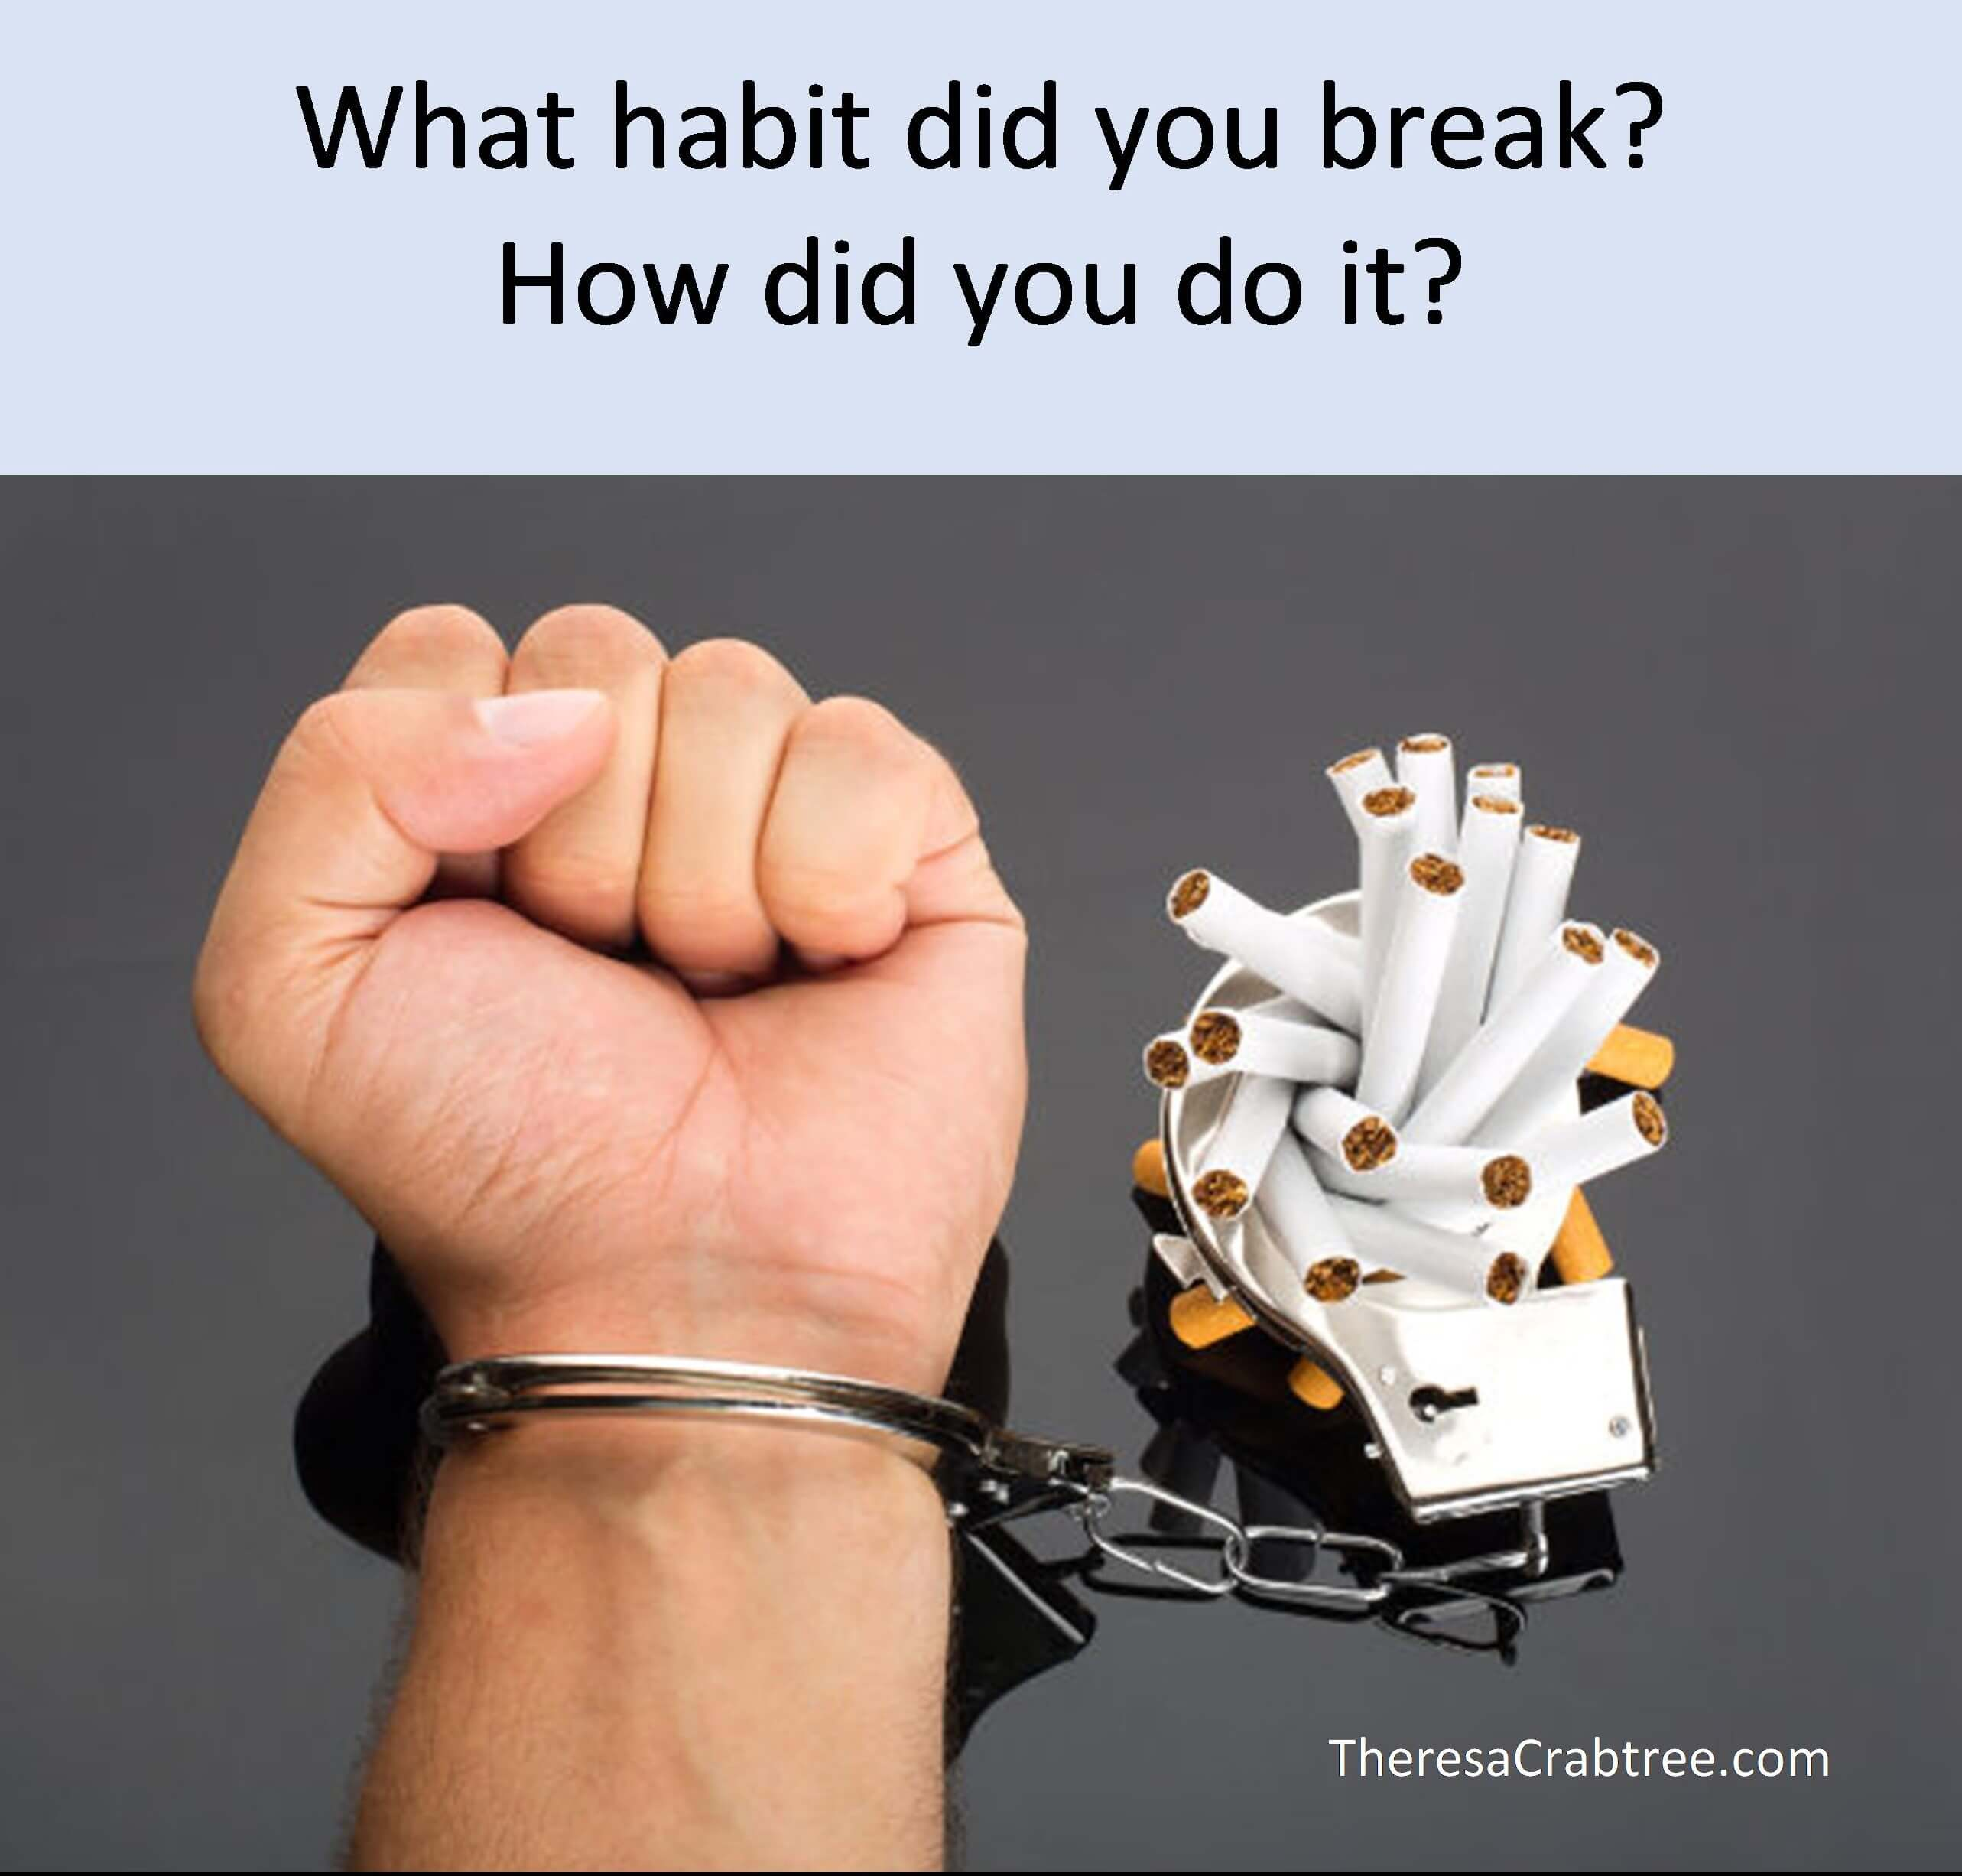 What habit did you break?